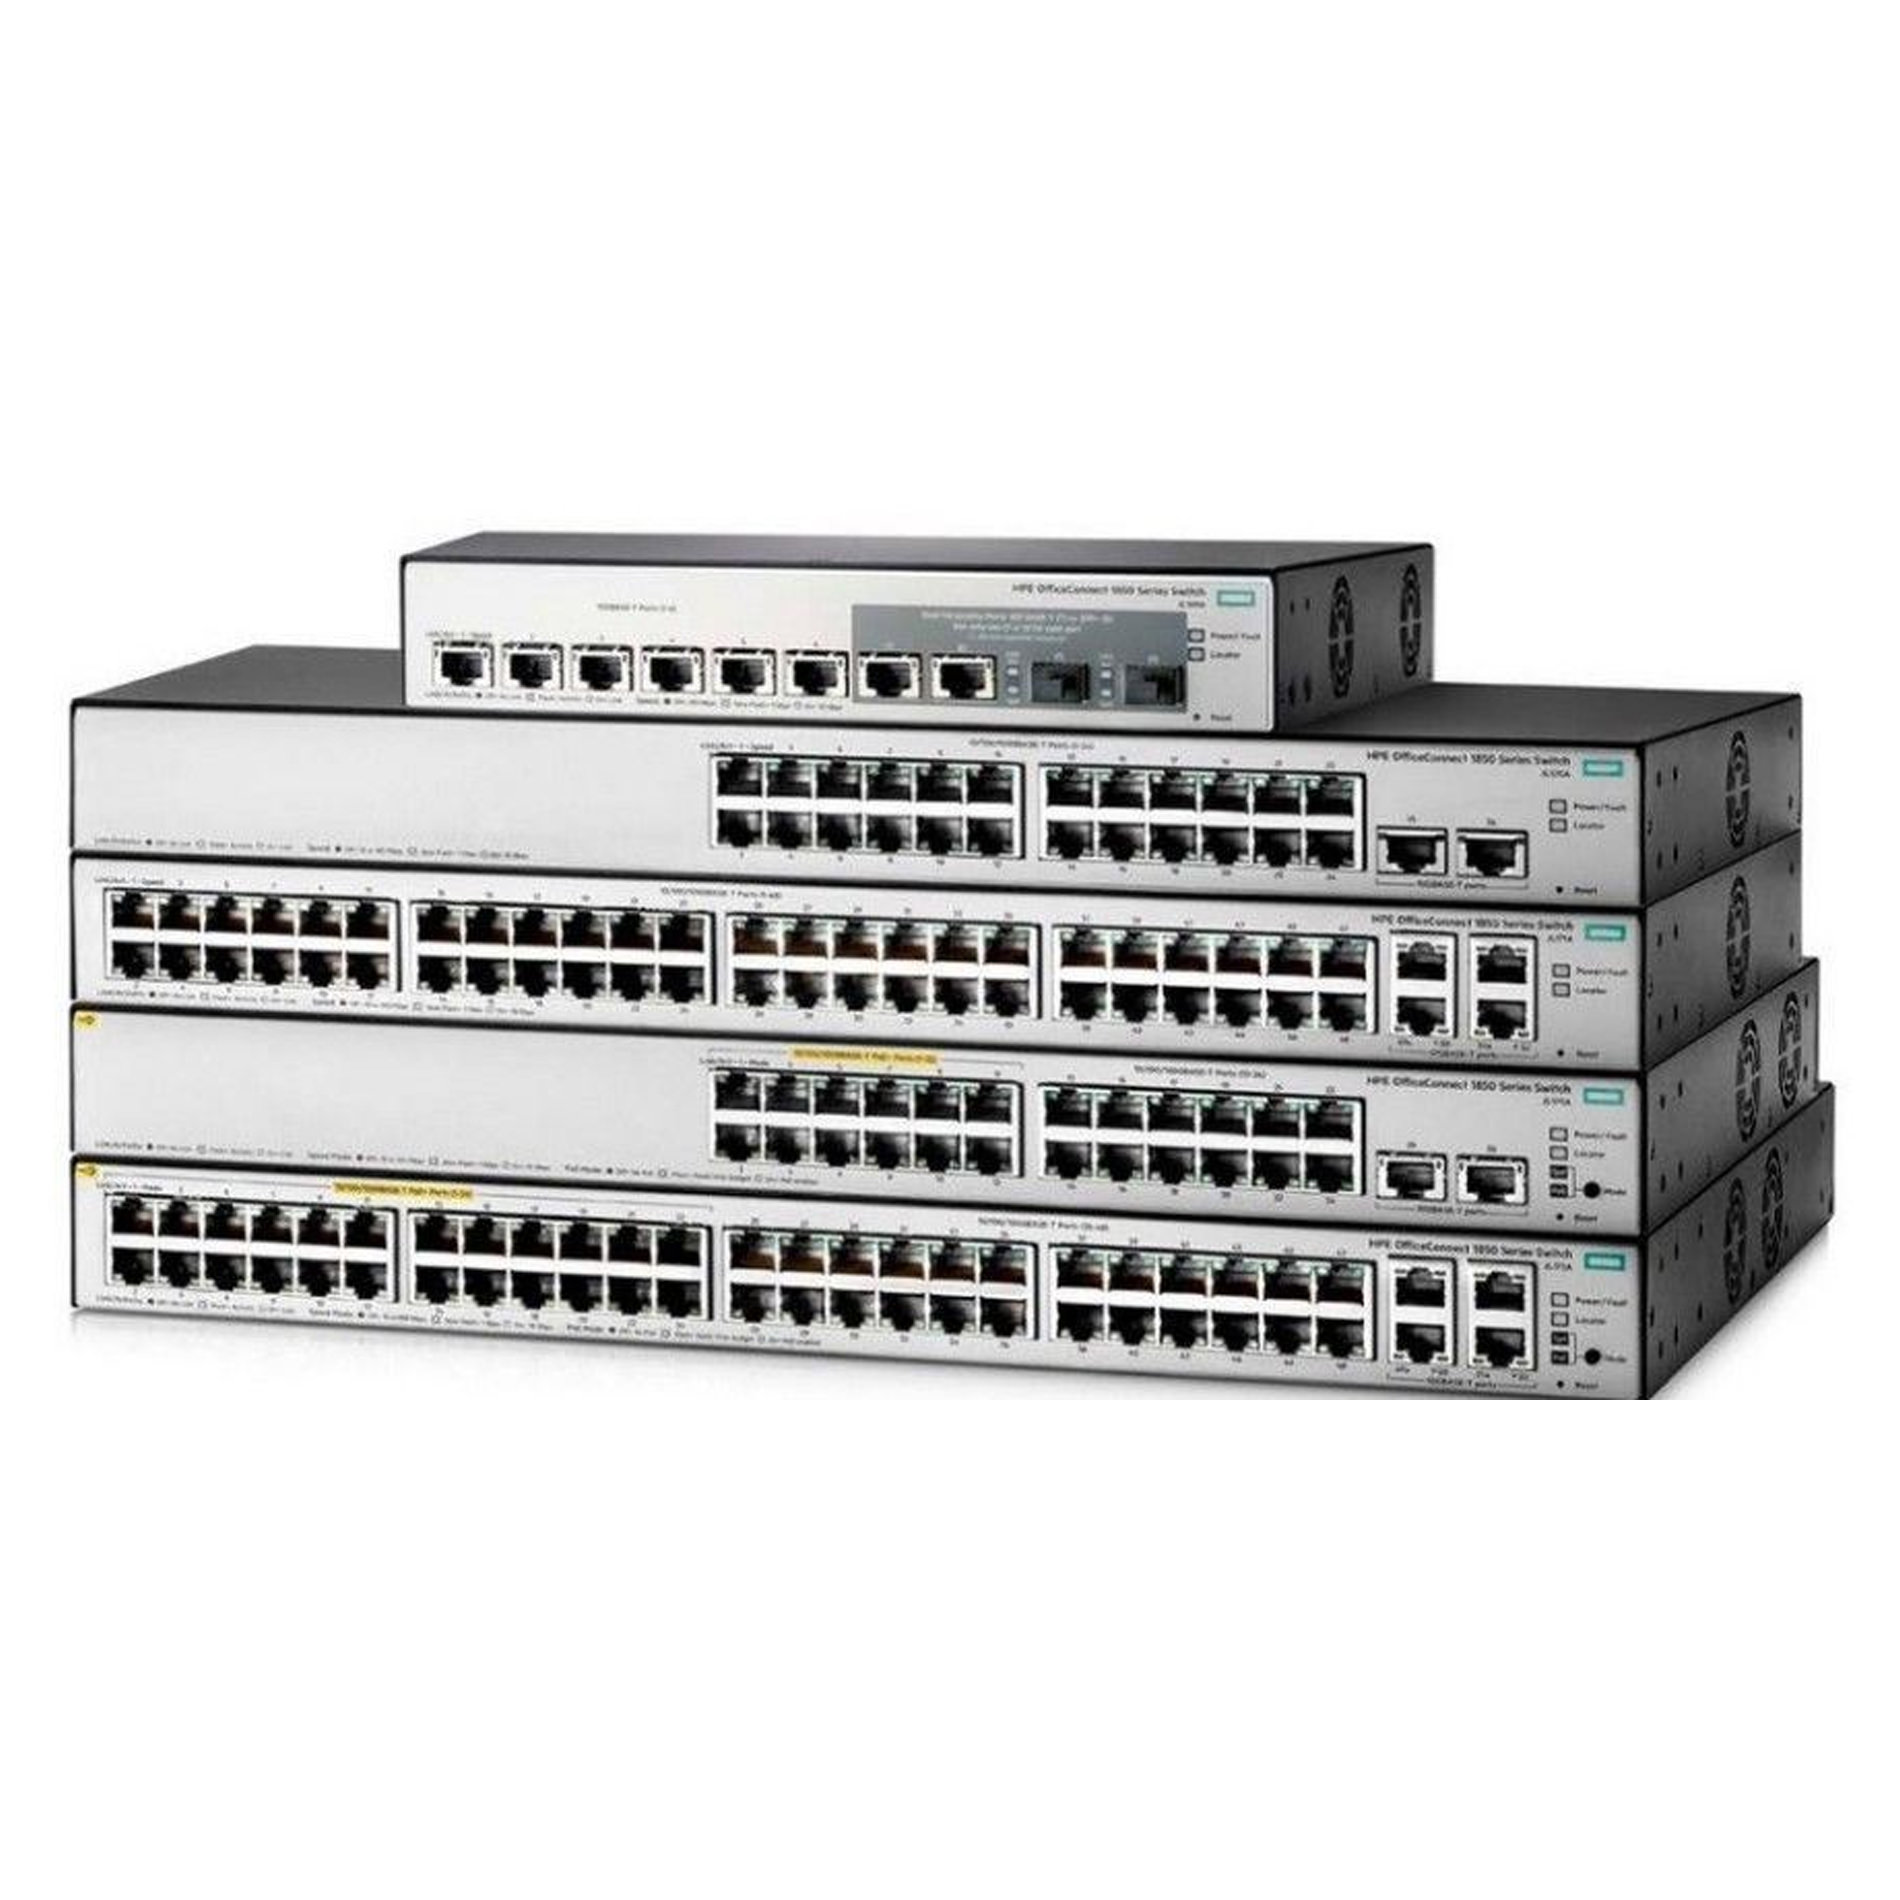 HPE JL169A-ABA OfficeConnect 1850 6XGT and 2XGT/SPF+ Switch